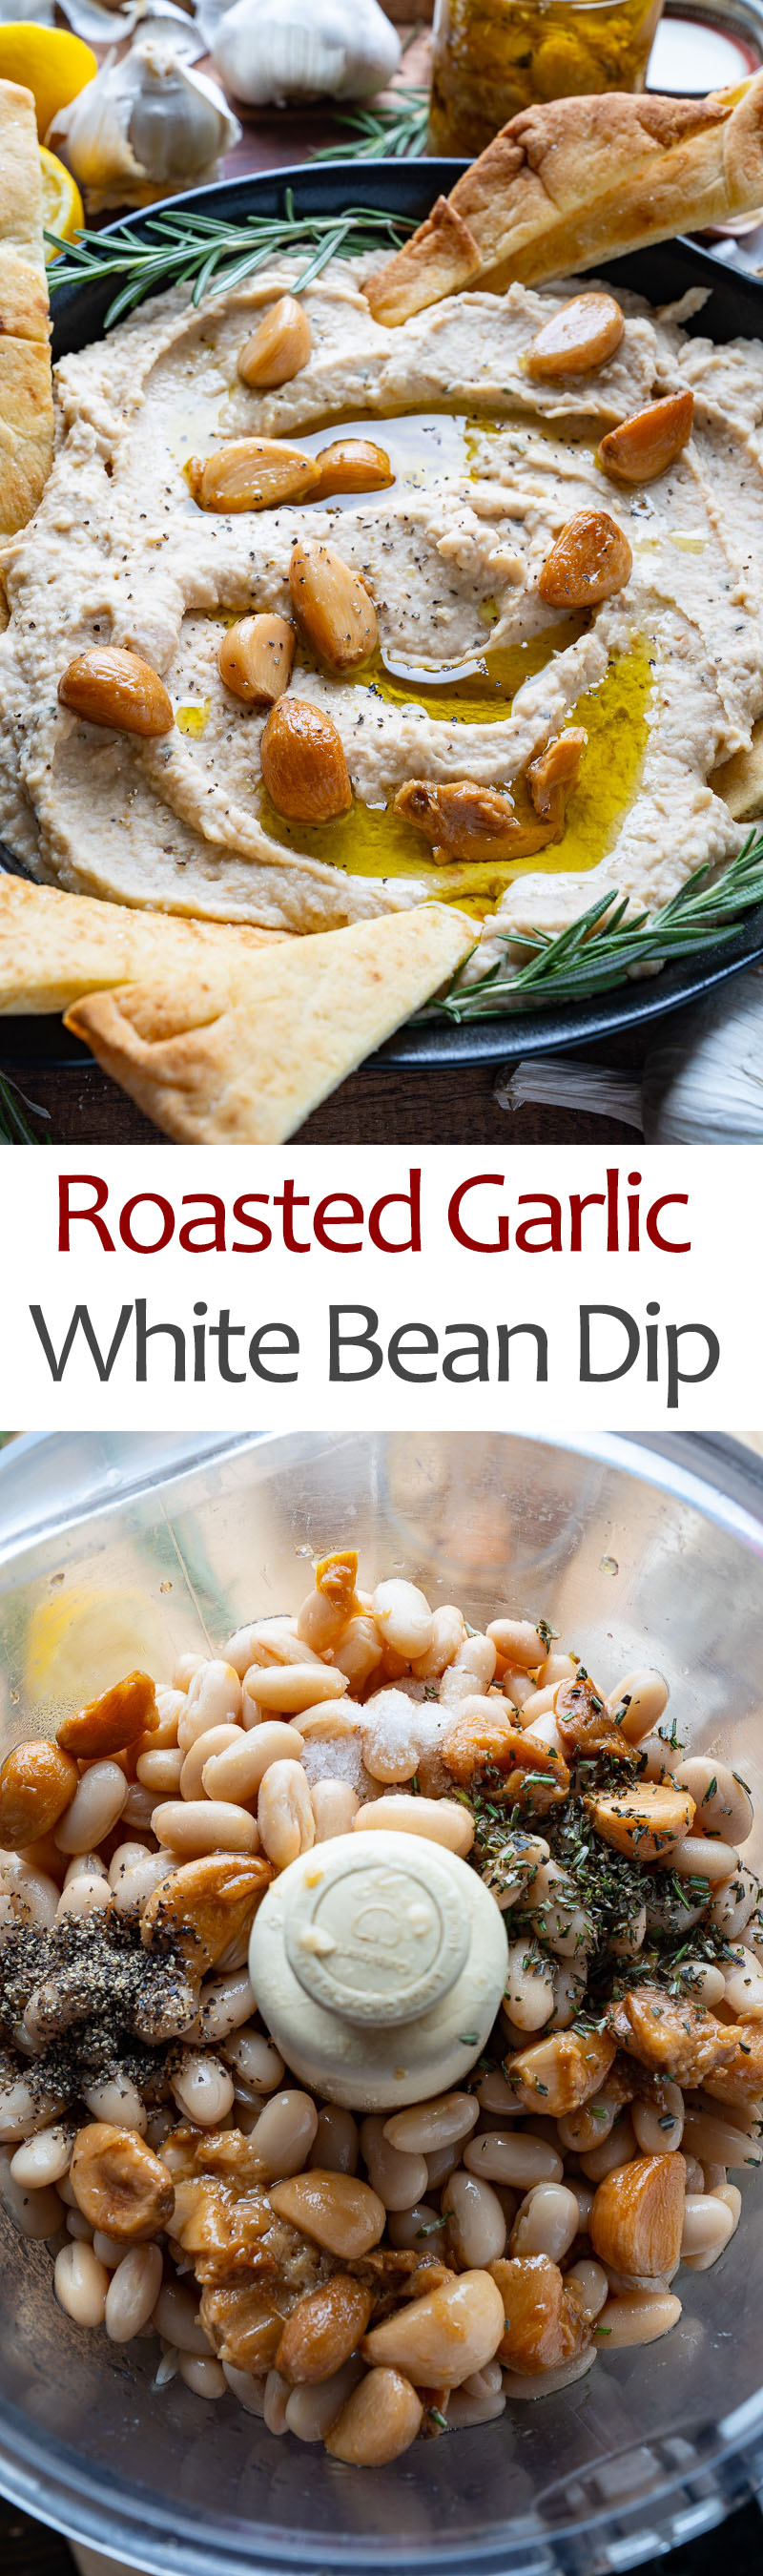 Roasted Garlic and Parmesan White Bean Dip